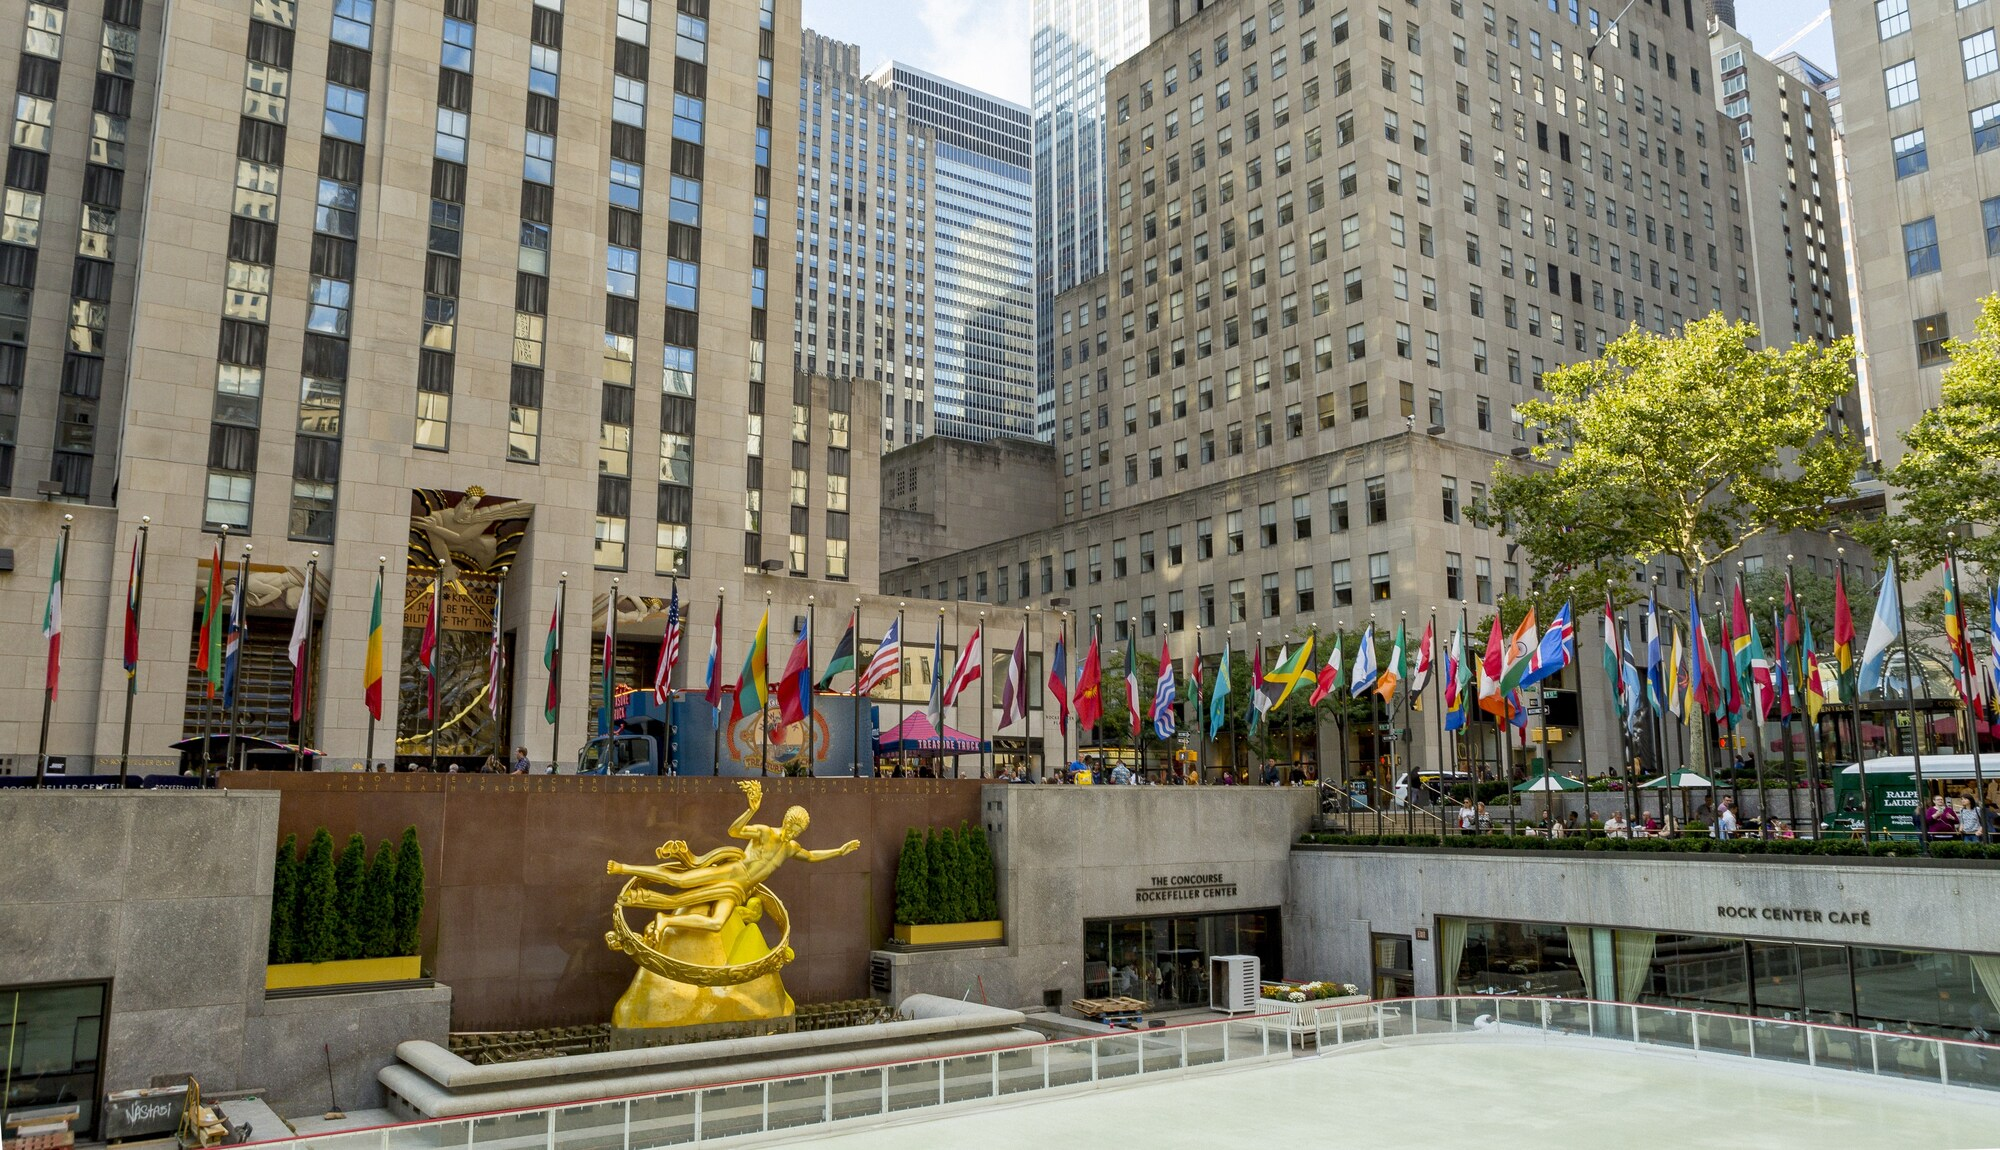 125 Rockefeller Center Hotels from Rs1,257,090, New York hotel discounts | Hotels.com